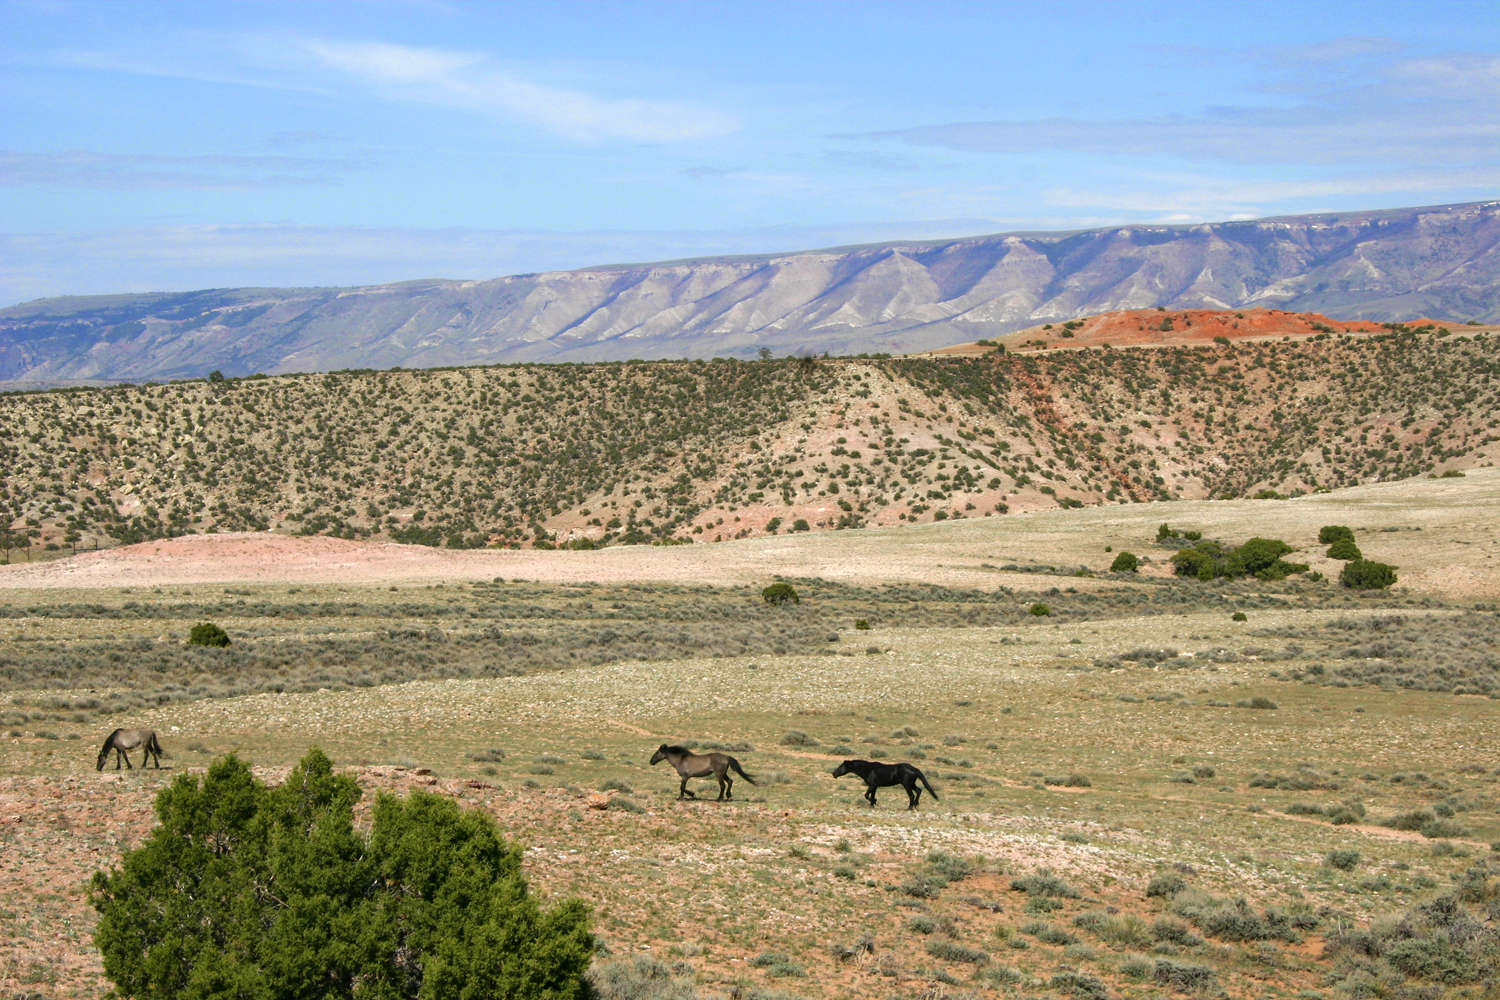 Pryor Mountain Wild Mustangs near Bighorn Canyon National Rec Area